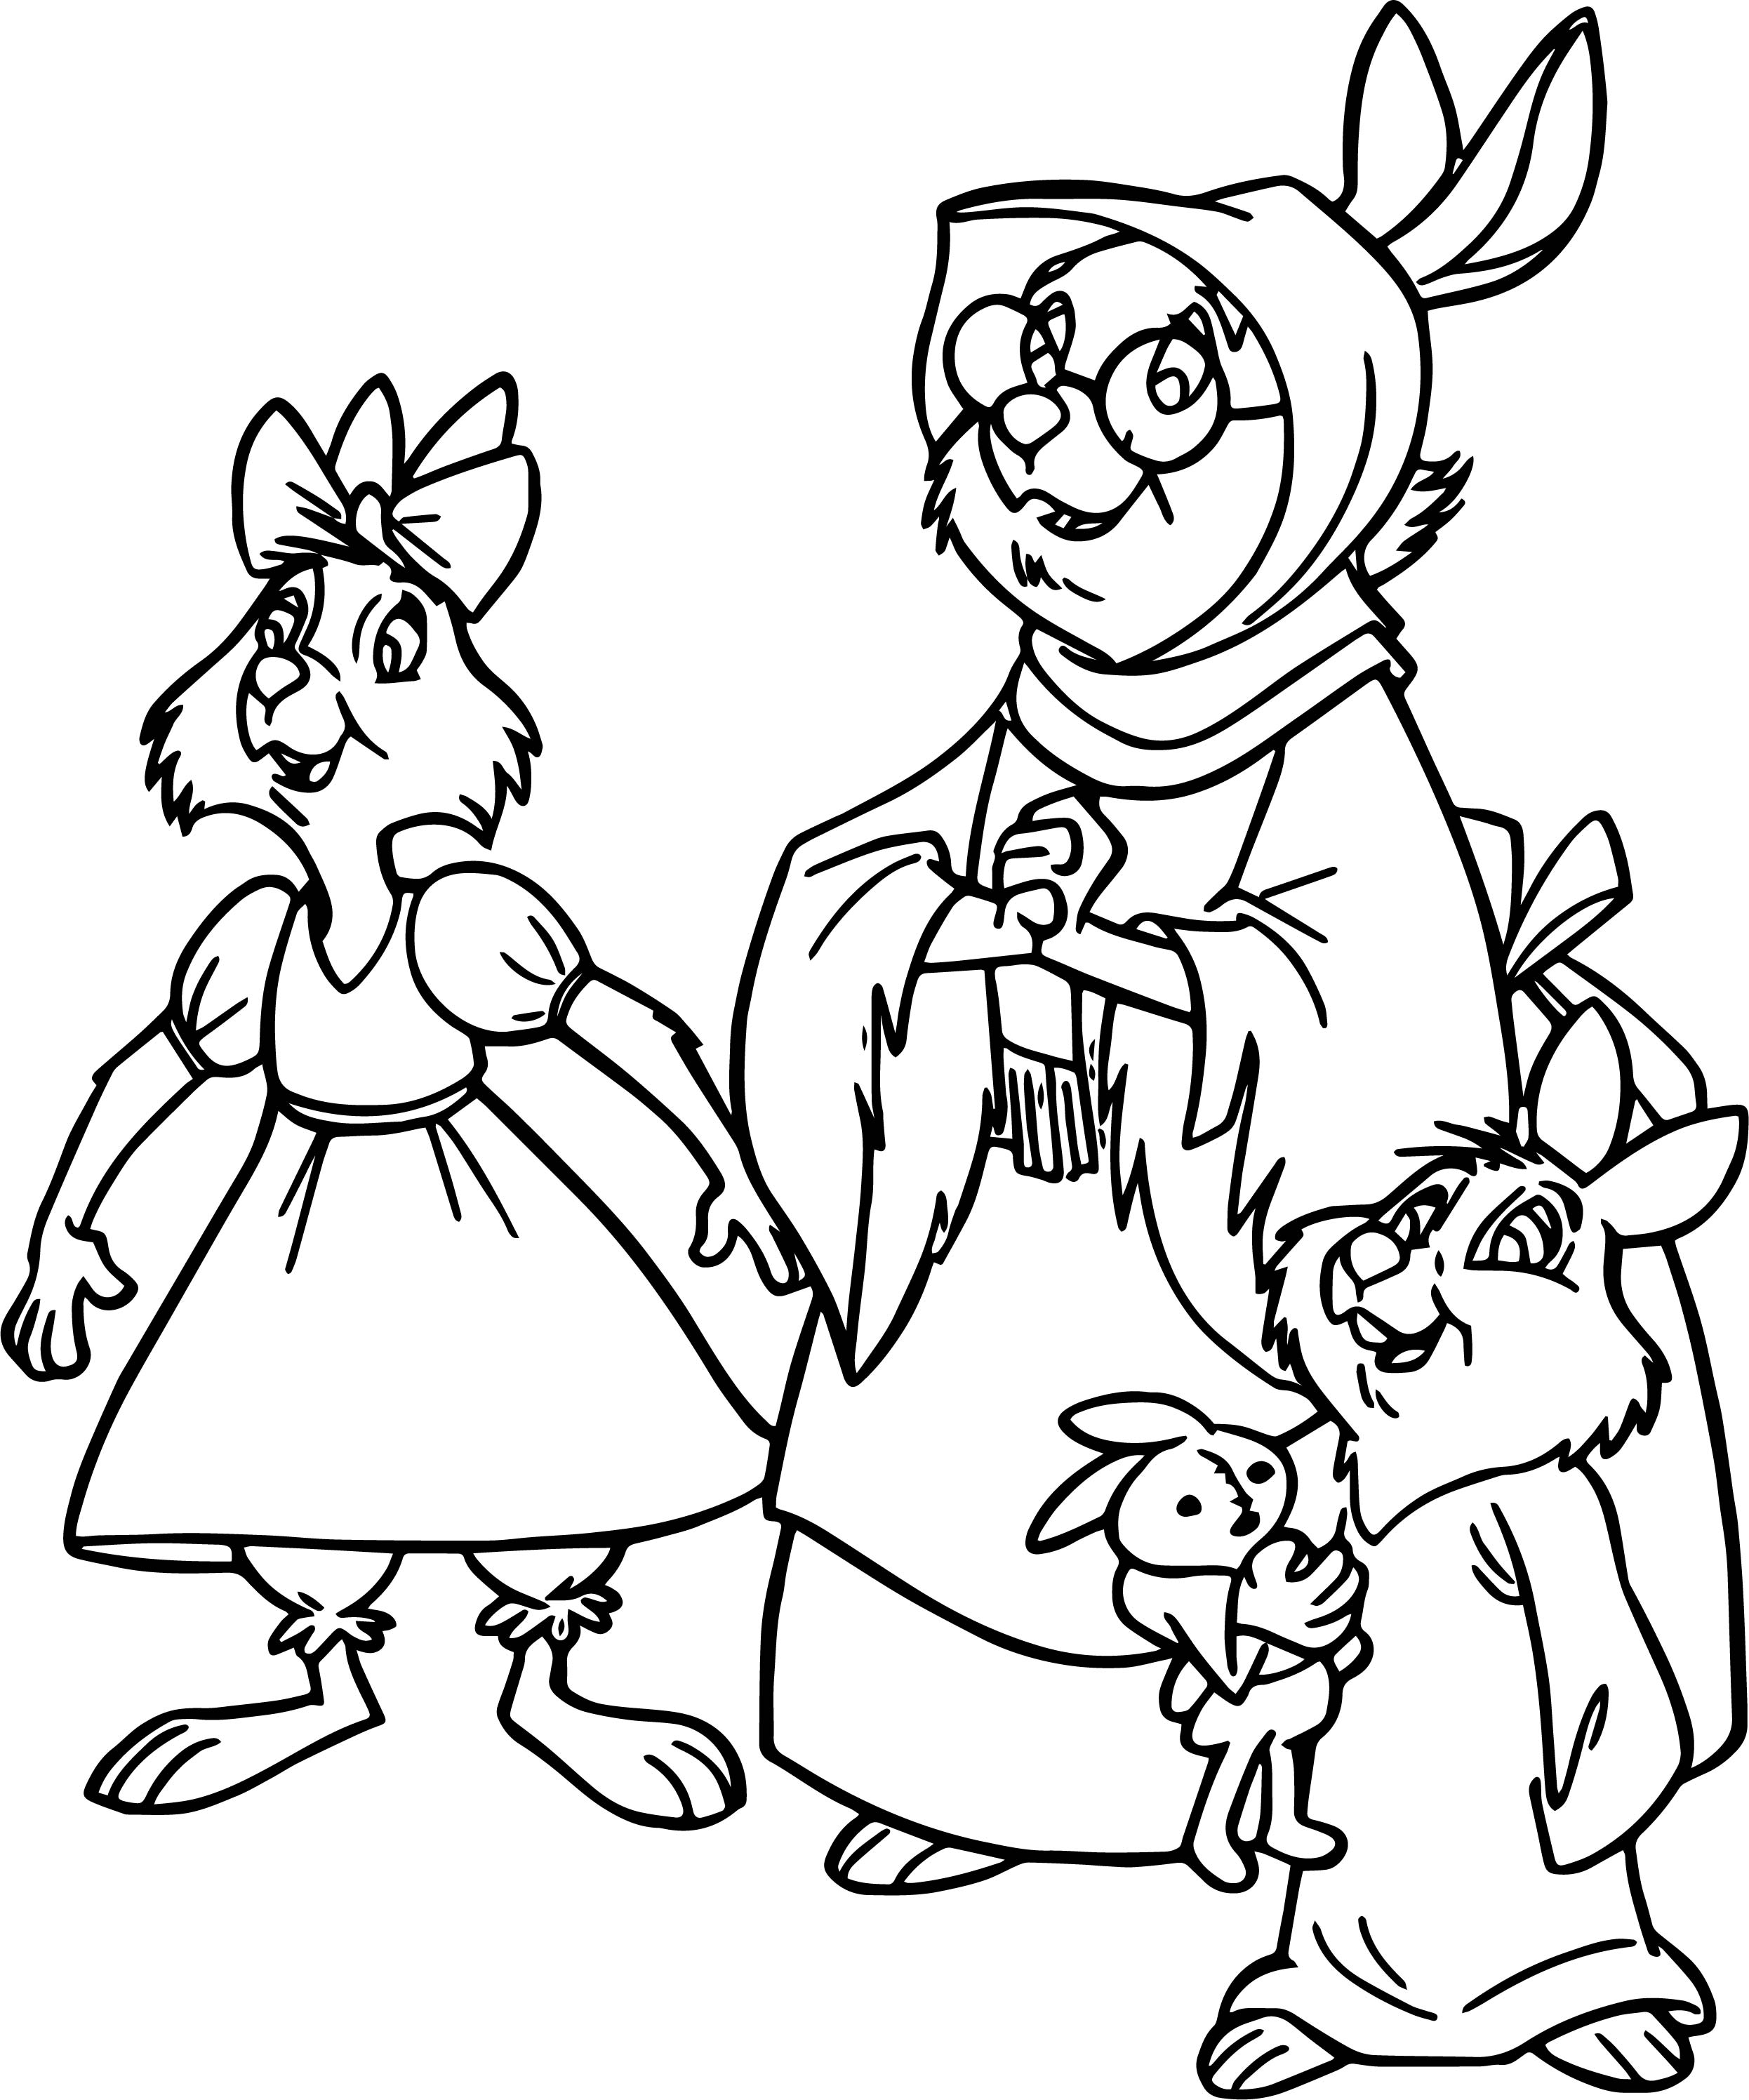 Bunny Family Coloring Page